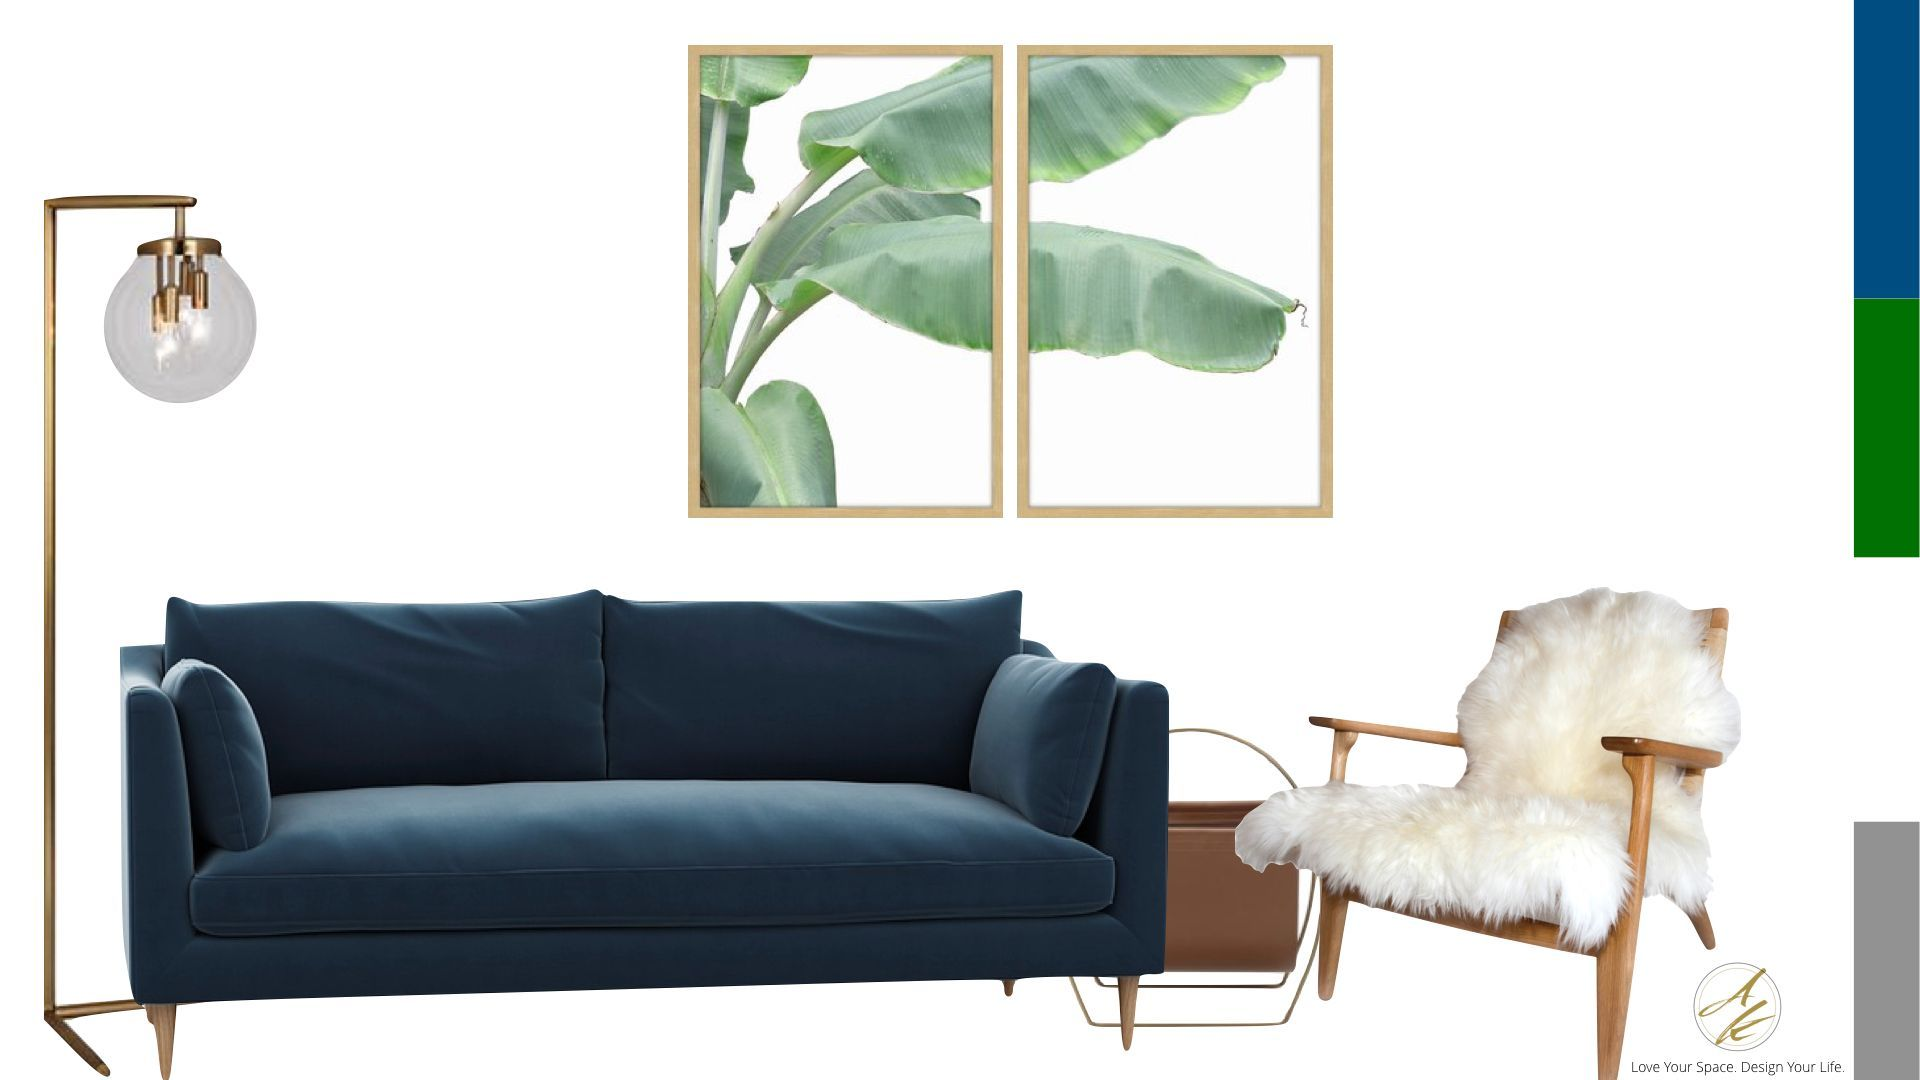 Whatu0027s Your Interior Design Style? Could You Be Mid Century Modern? Take  The Albie